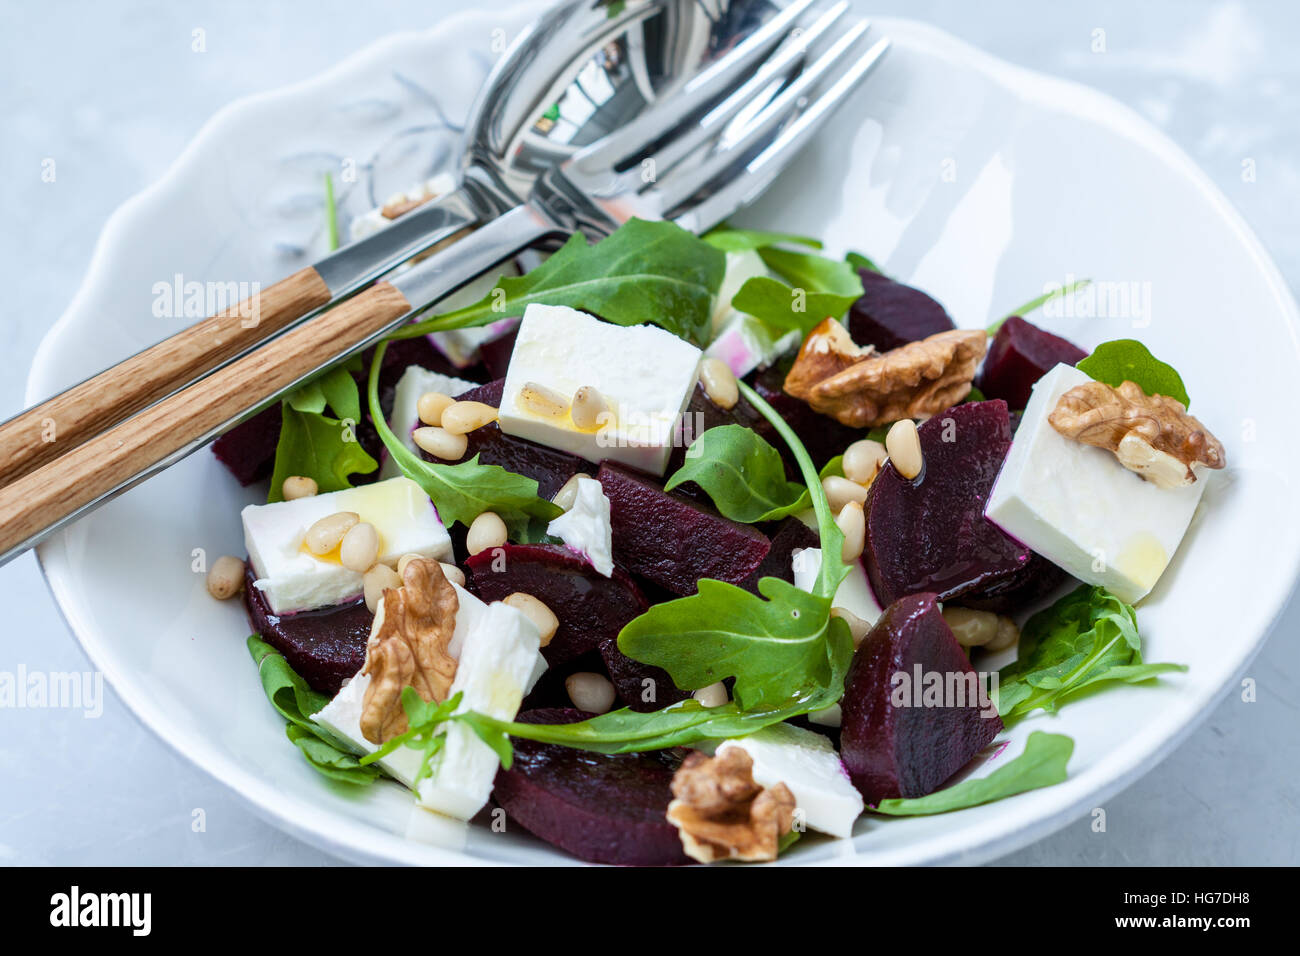 Salad with beets, goat cheese and arugula. - Stock Image